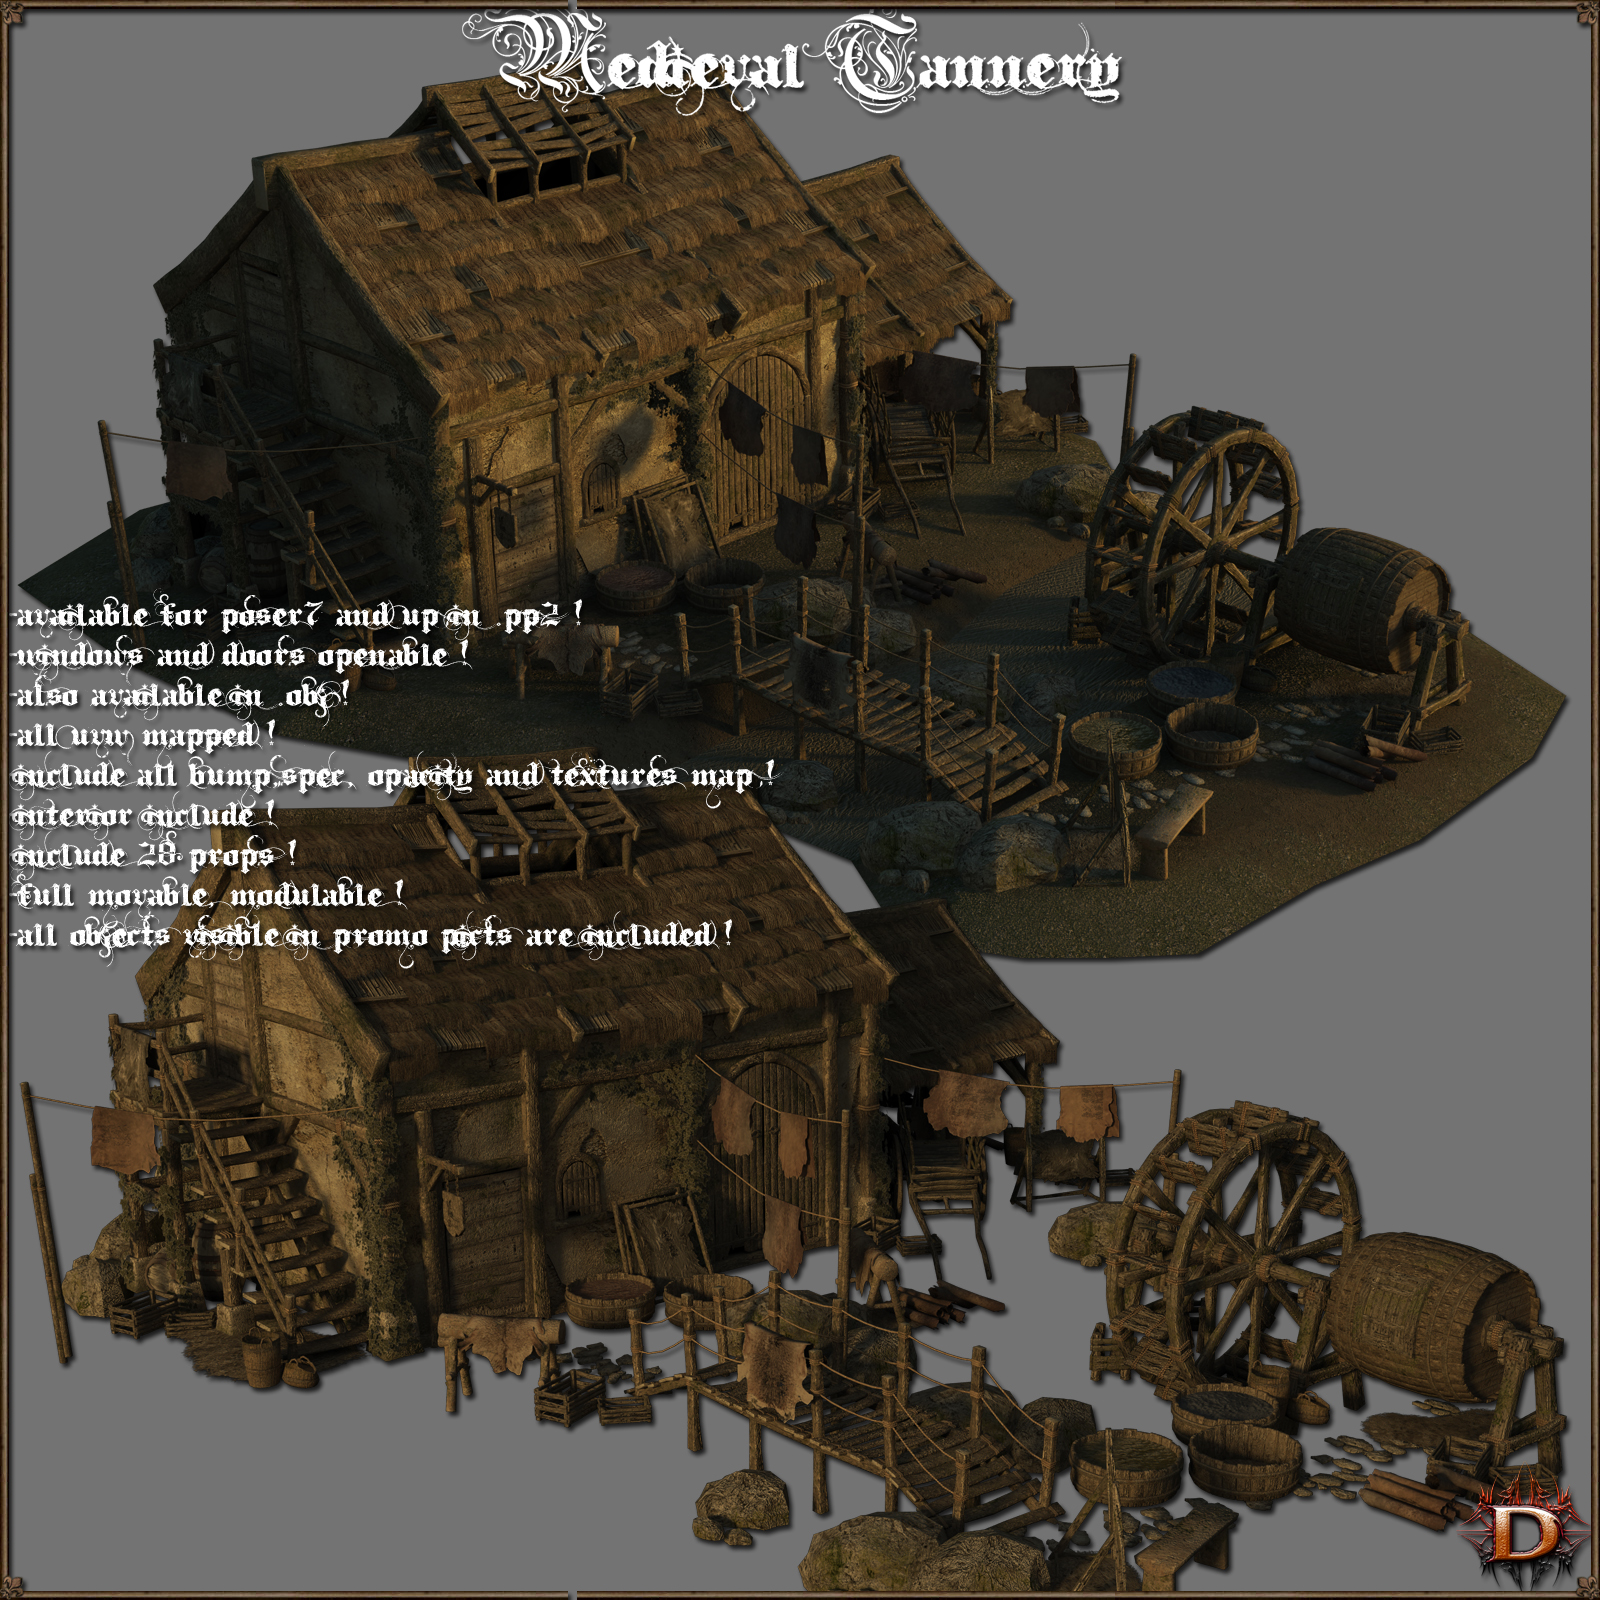 Medieval Tannery